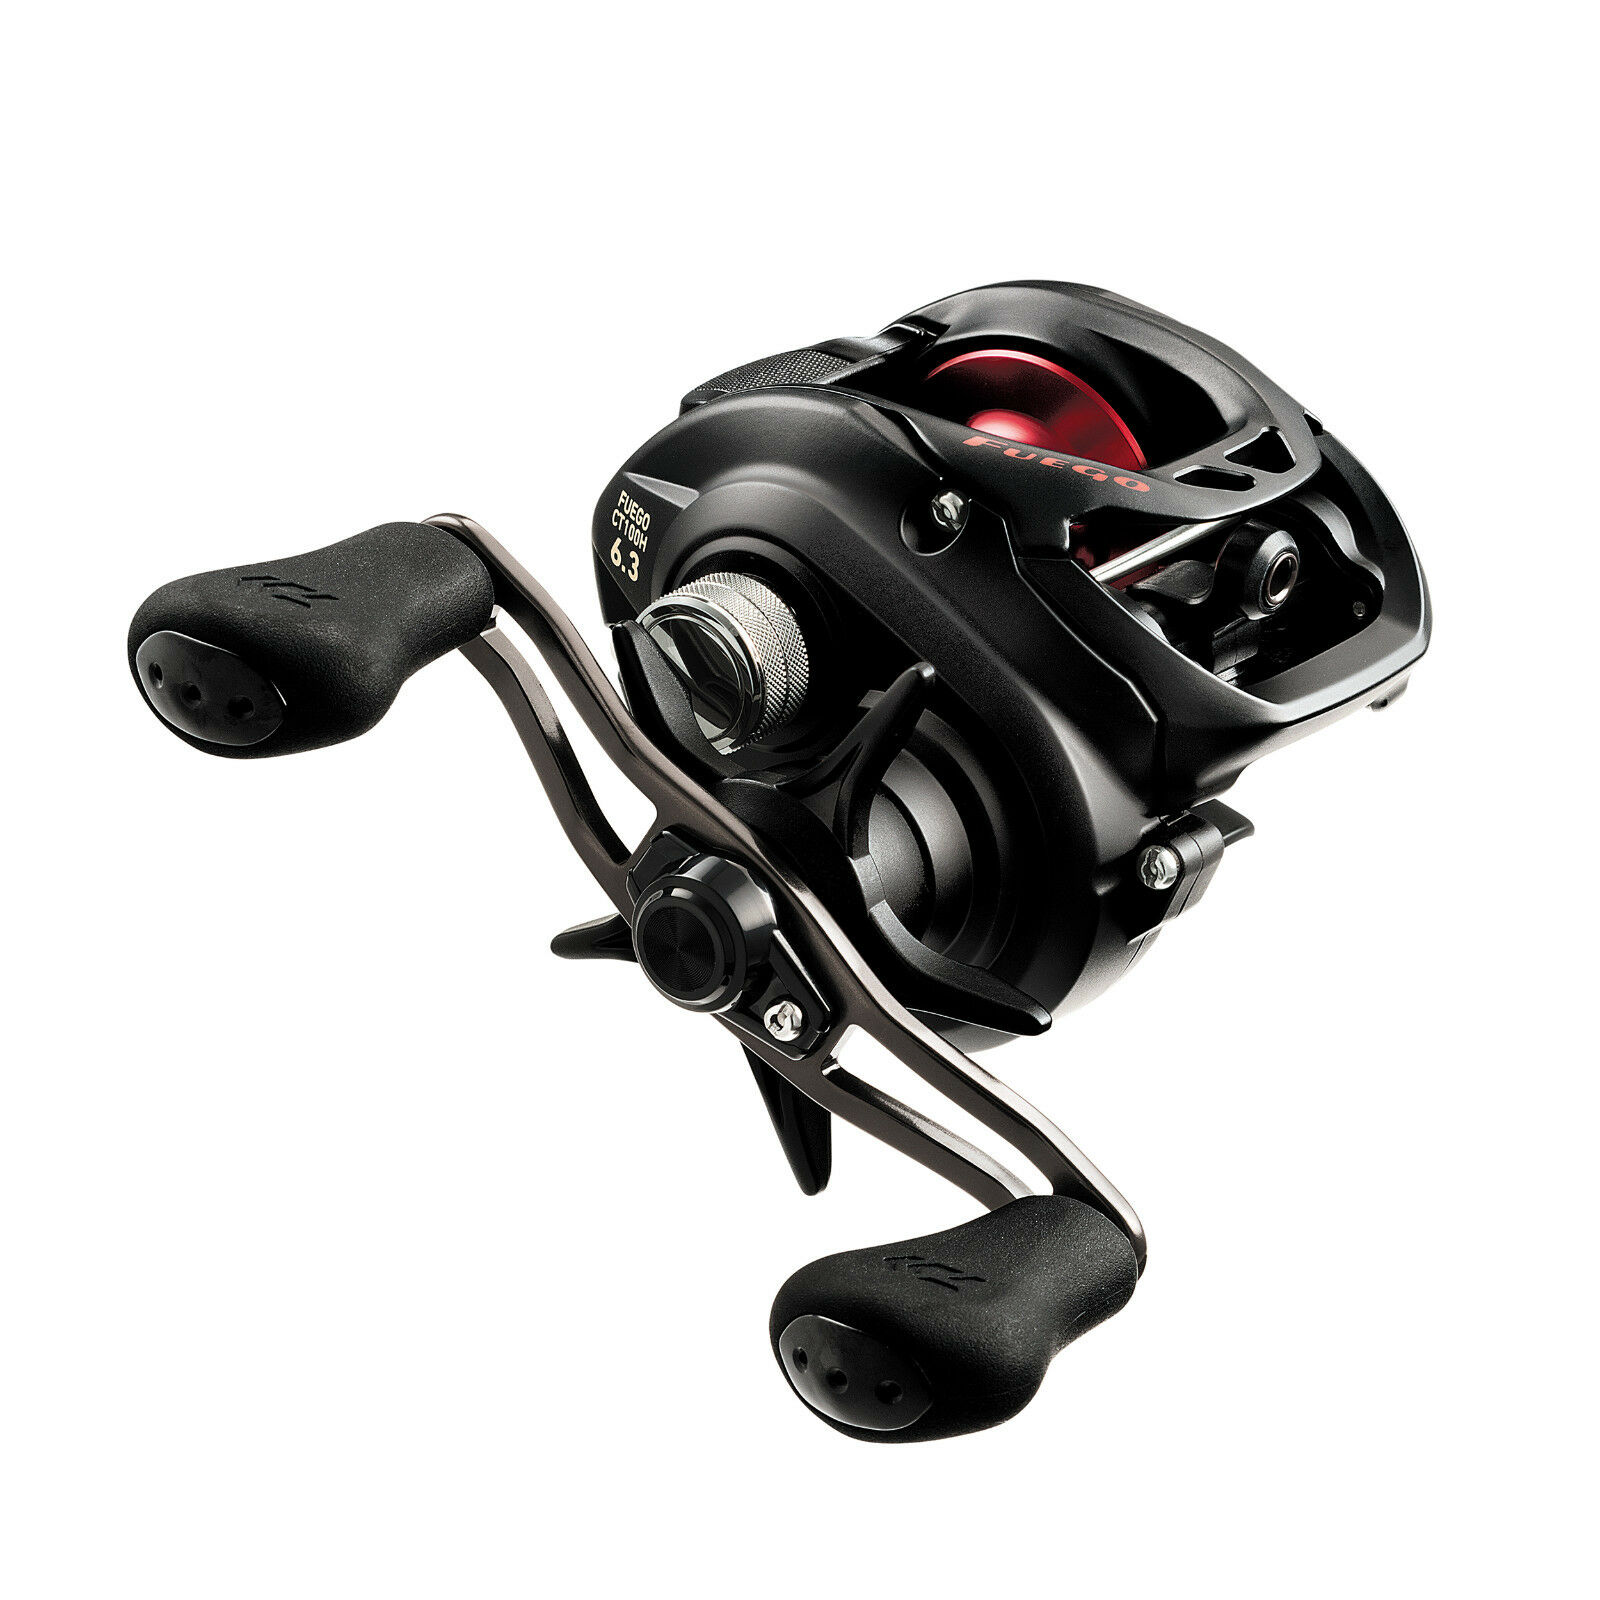 Daiwa Fuego CT 100 Right Hand Baitcast Casting Fishing Reel 8.1 1   FGCT100XS